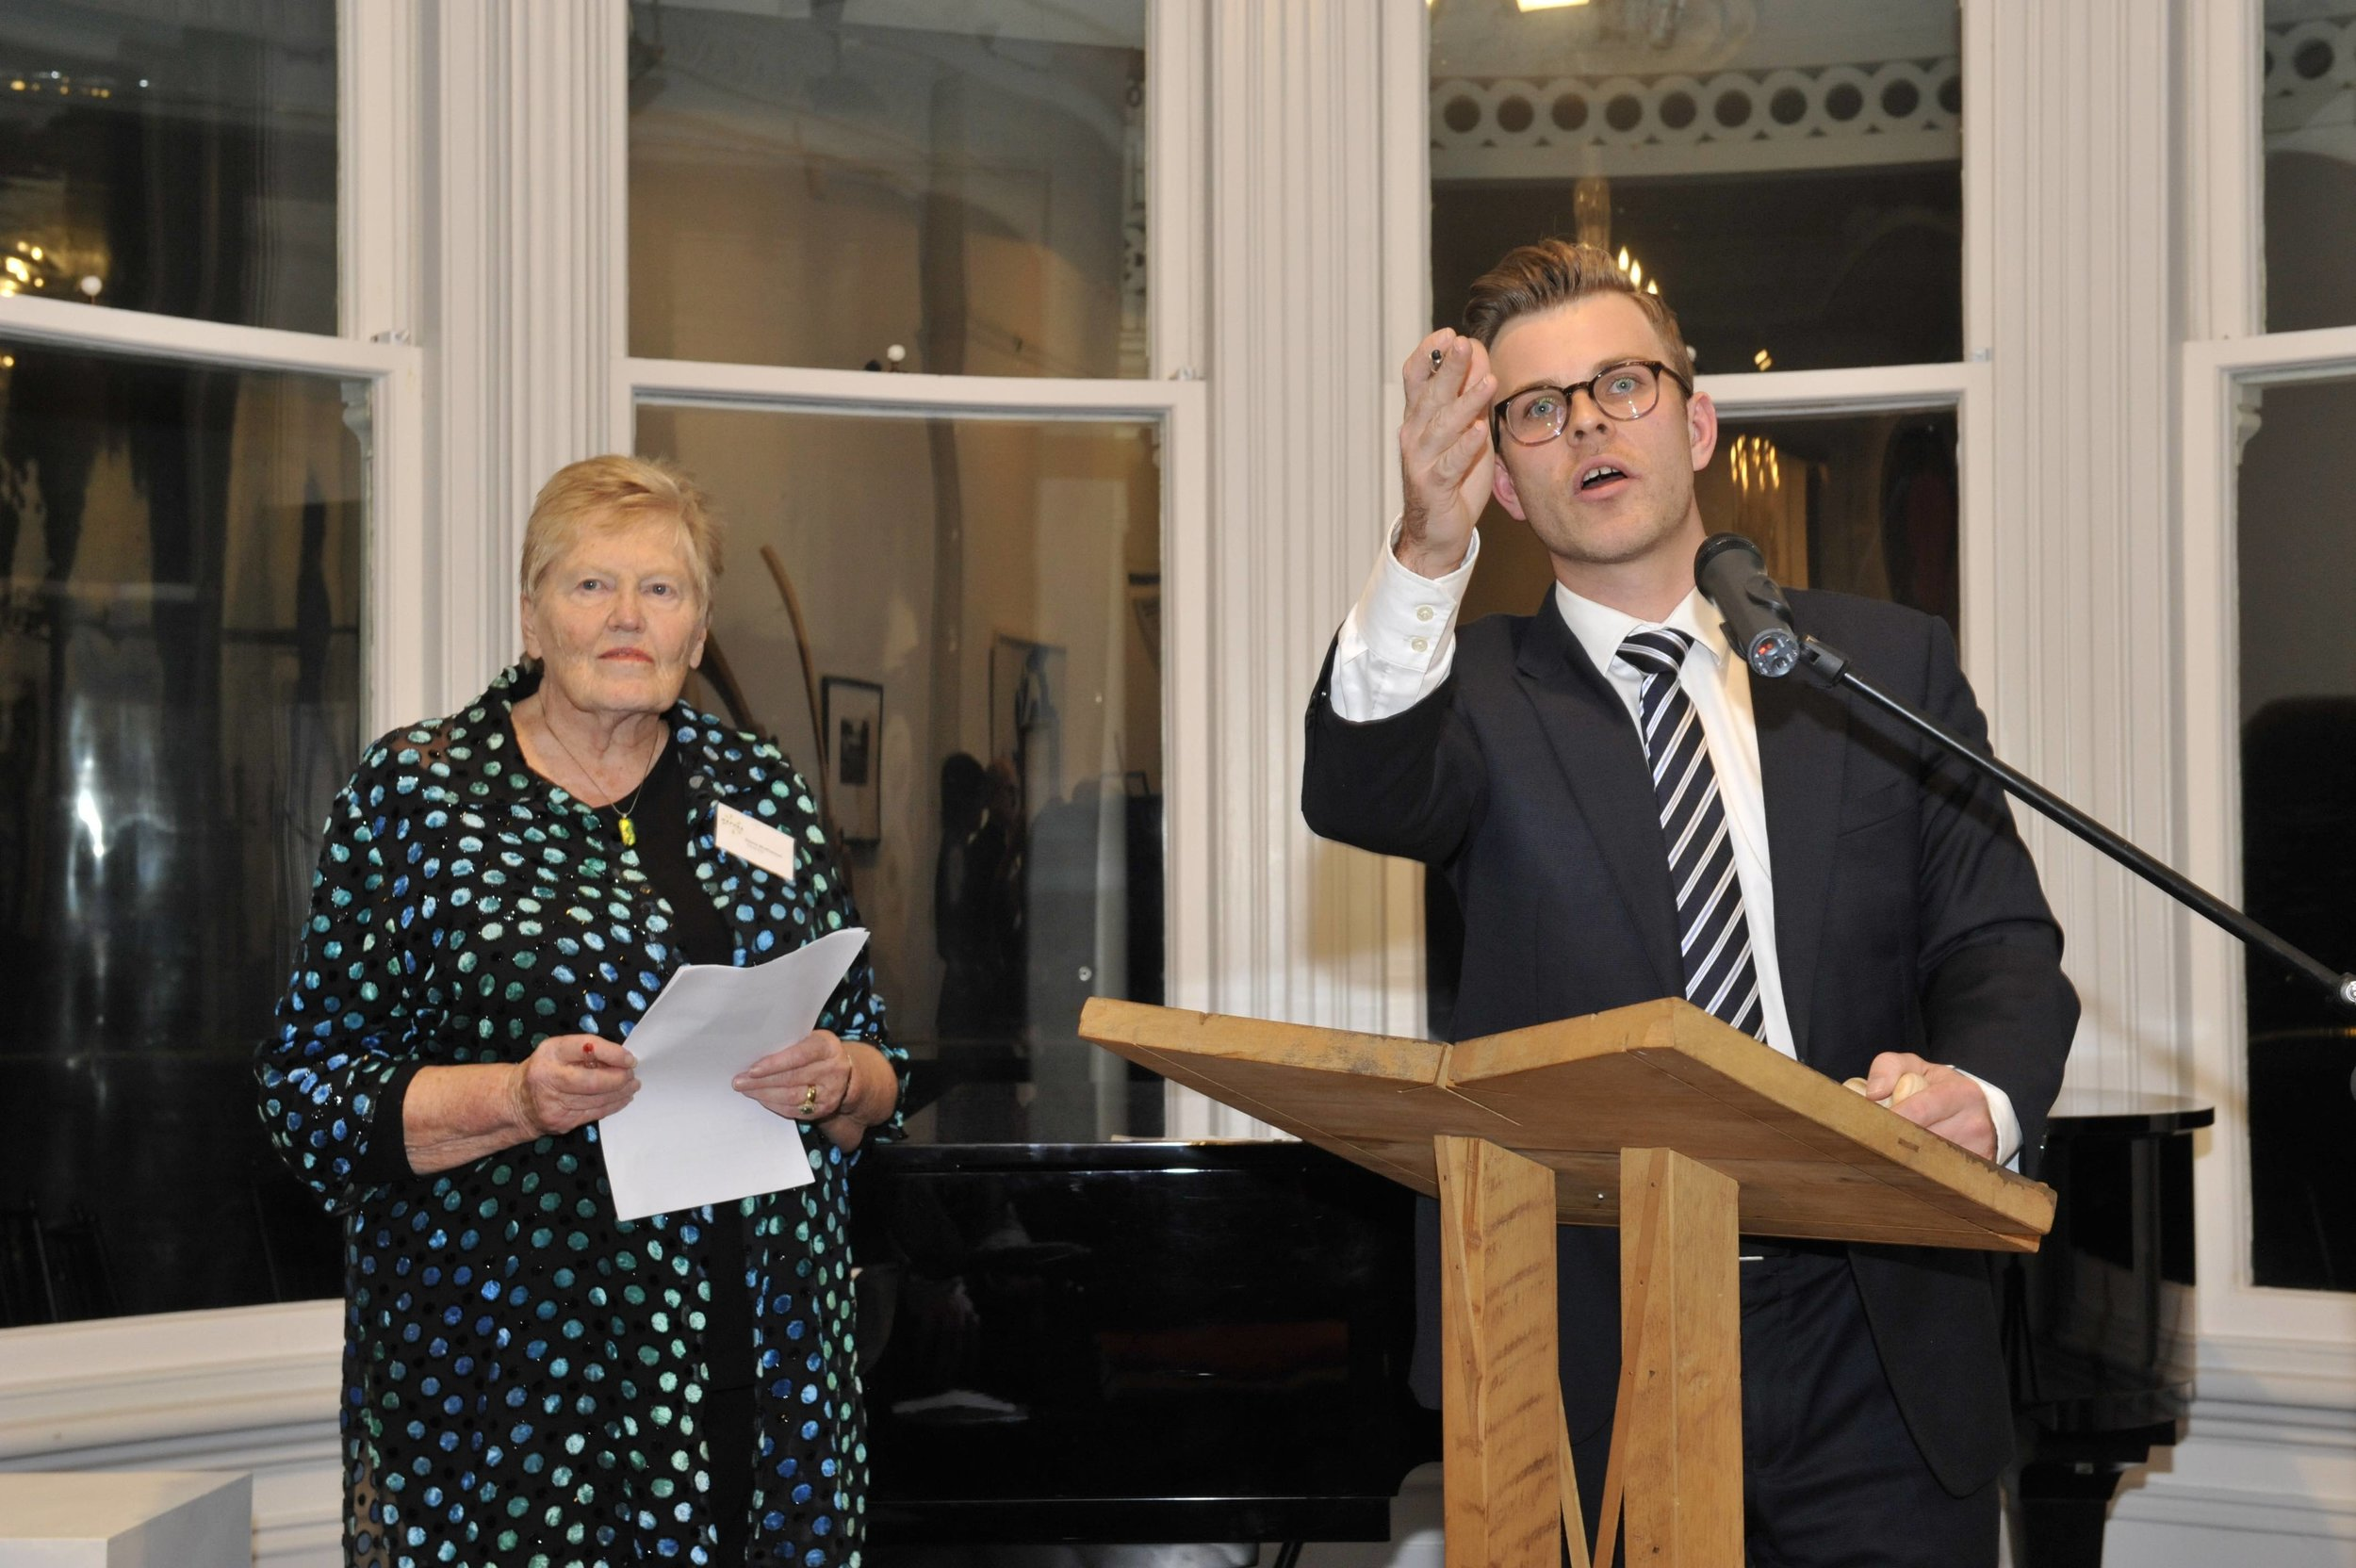 Māpura Studios Director Diana McPherson (left) with Auctioneer Charles Ninow (right) of BowerbankNinow Auctions